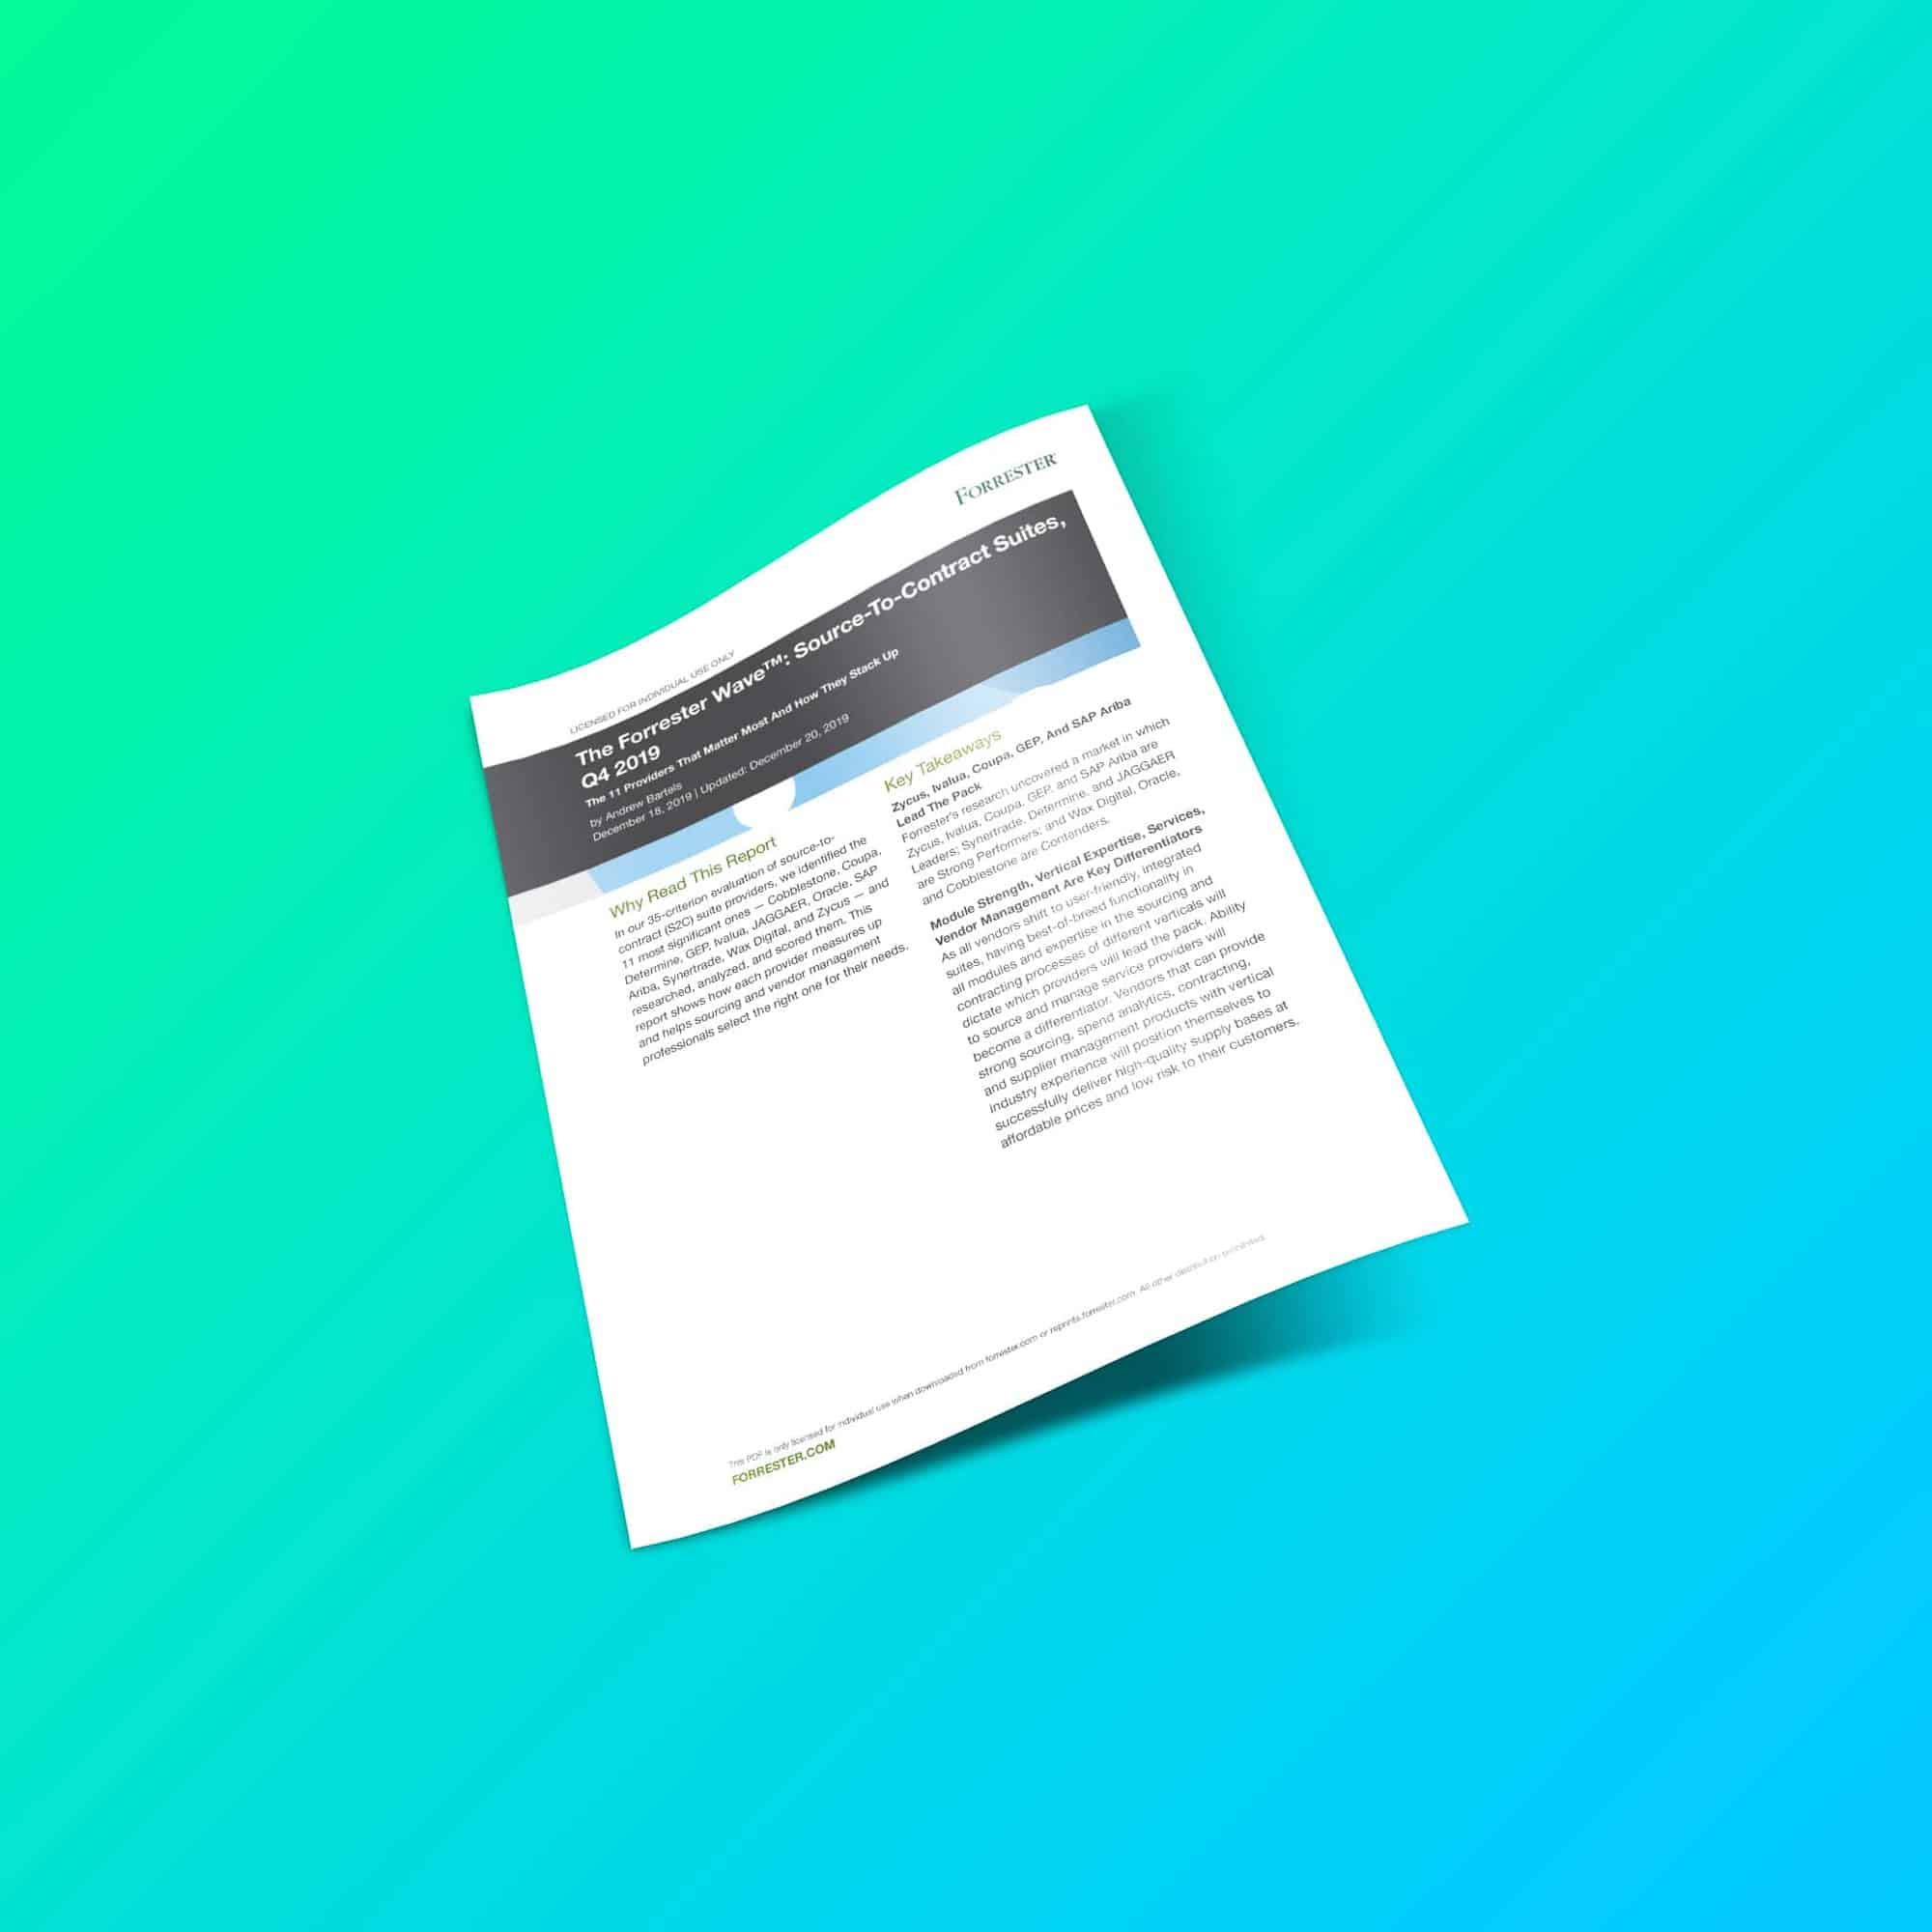 Rapport The Forrester Wave: Source-To-Contract Suites, Q4 2019 (en anglais)